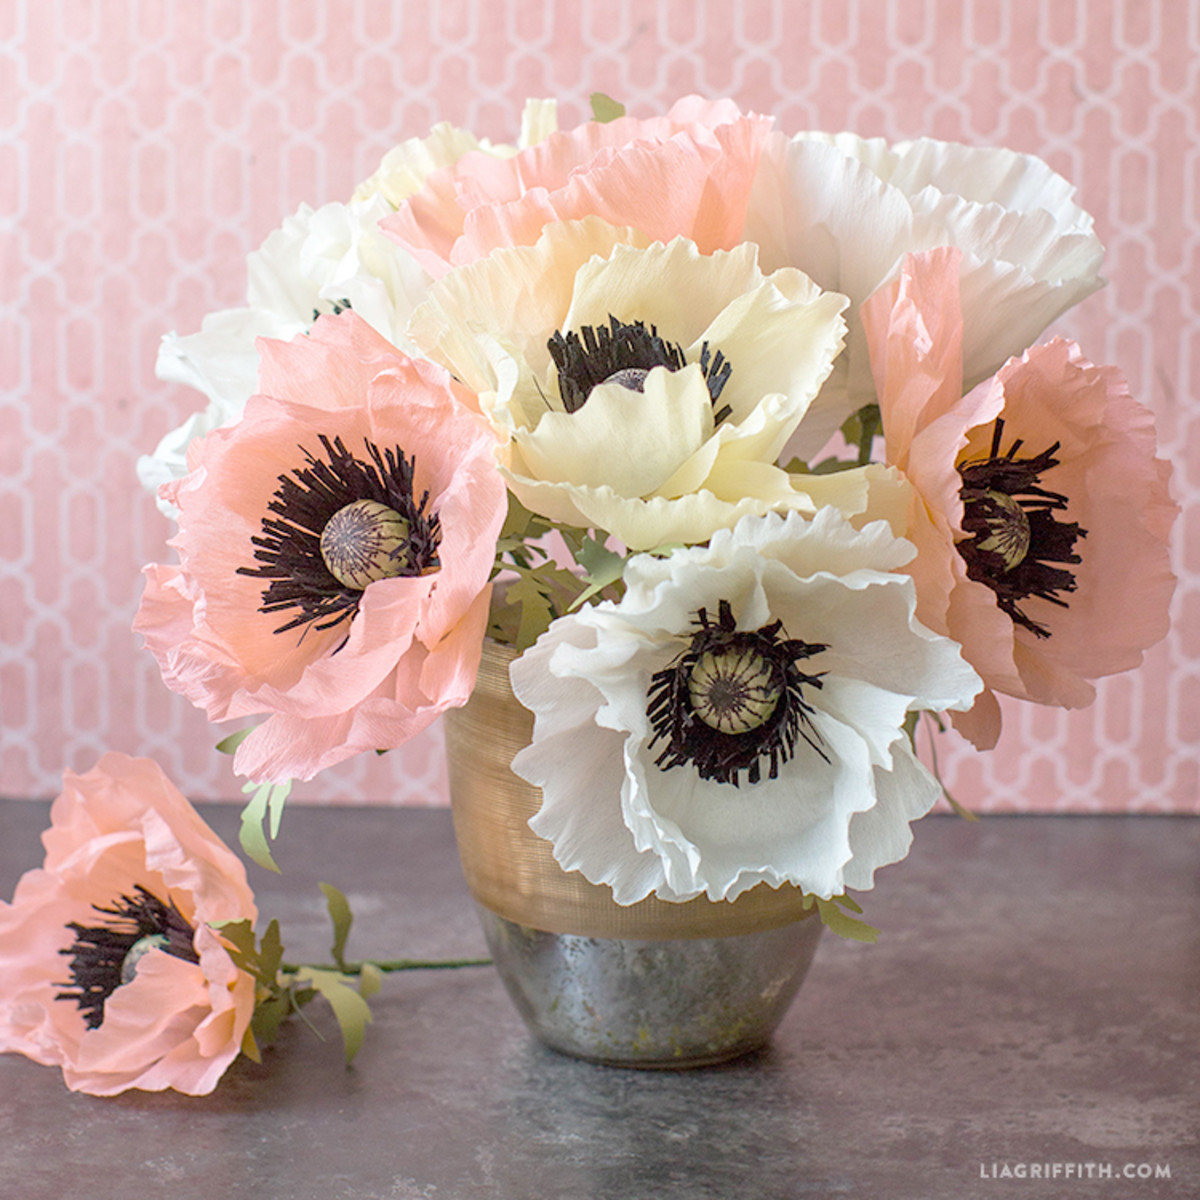 Make sure to use good quality crepe paper in your flowers. You will find that you get a better quality flower  with better quality crepe paper